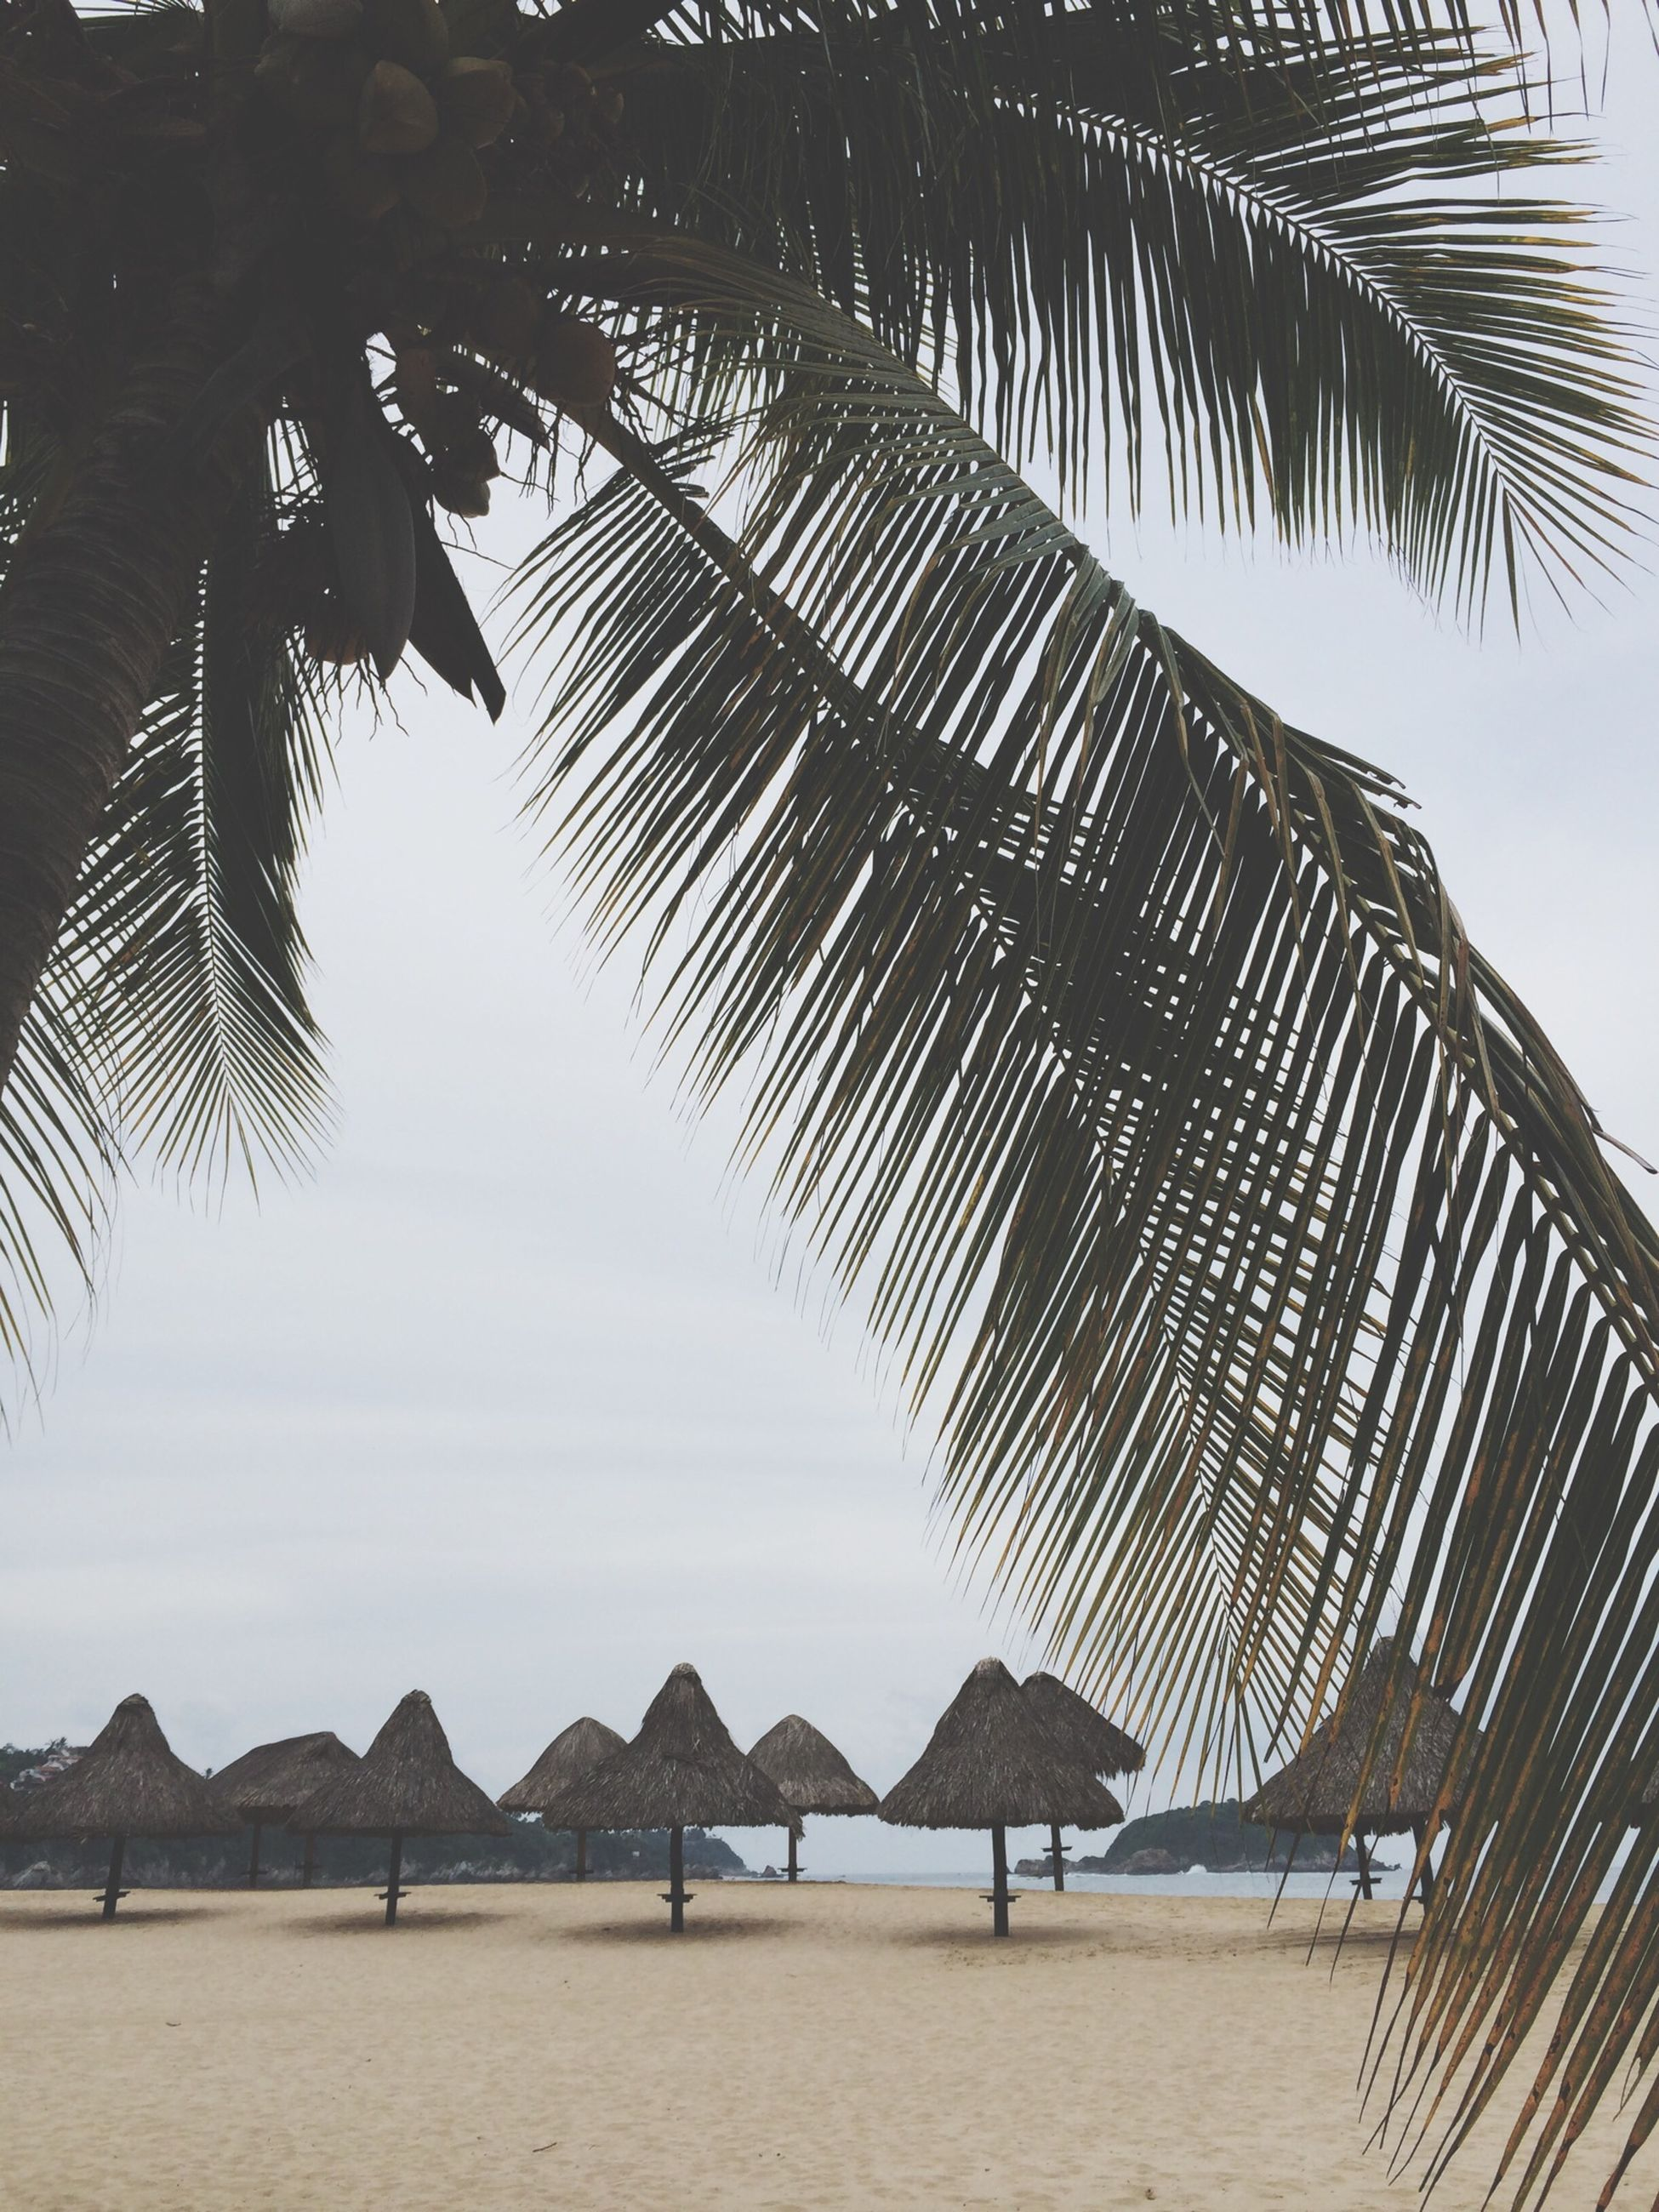 palm tree, beach, tree, sand, sky, sea, tranquility, thatched roof, nature, palm leaf, shore, tranquil scene, coconut palm tree, sunlight, day, scenics, built structure, growth, beauty in nature, beach umbrella